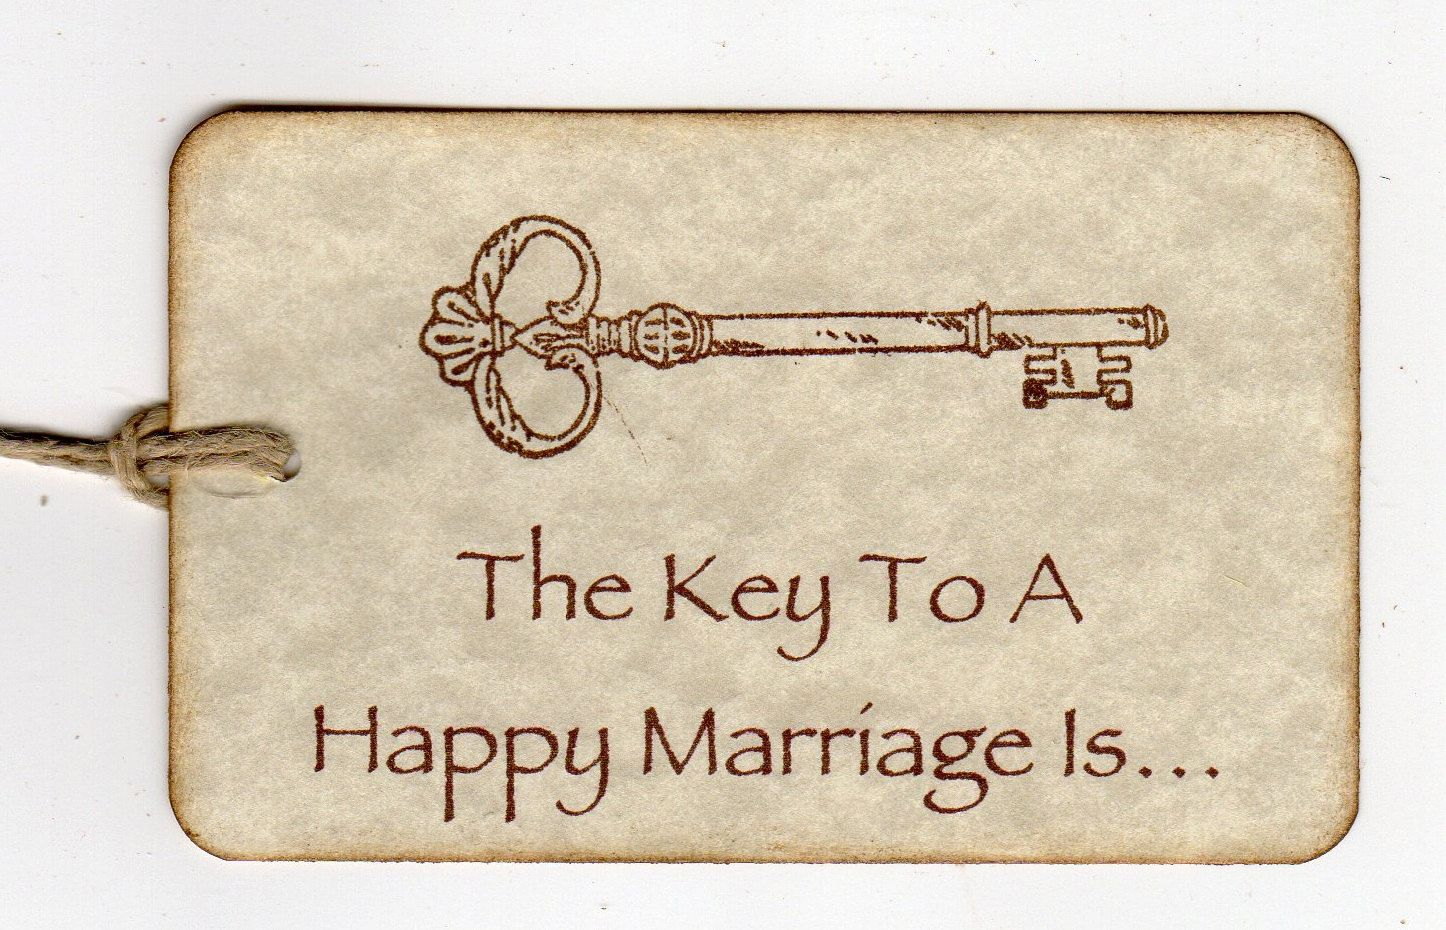 Key to a happy marriage tags